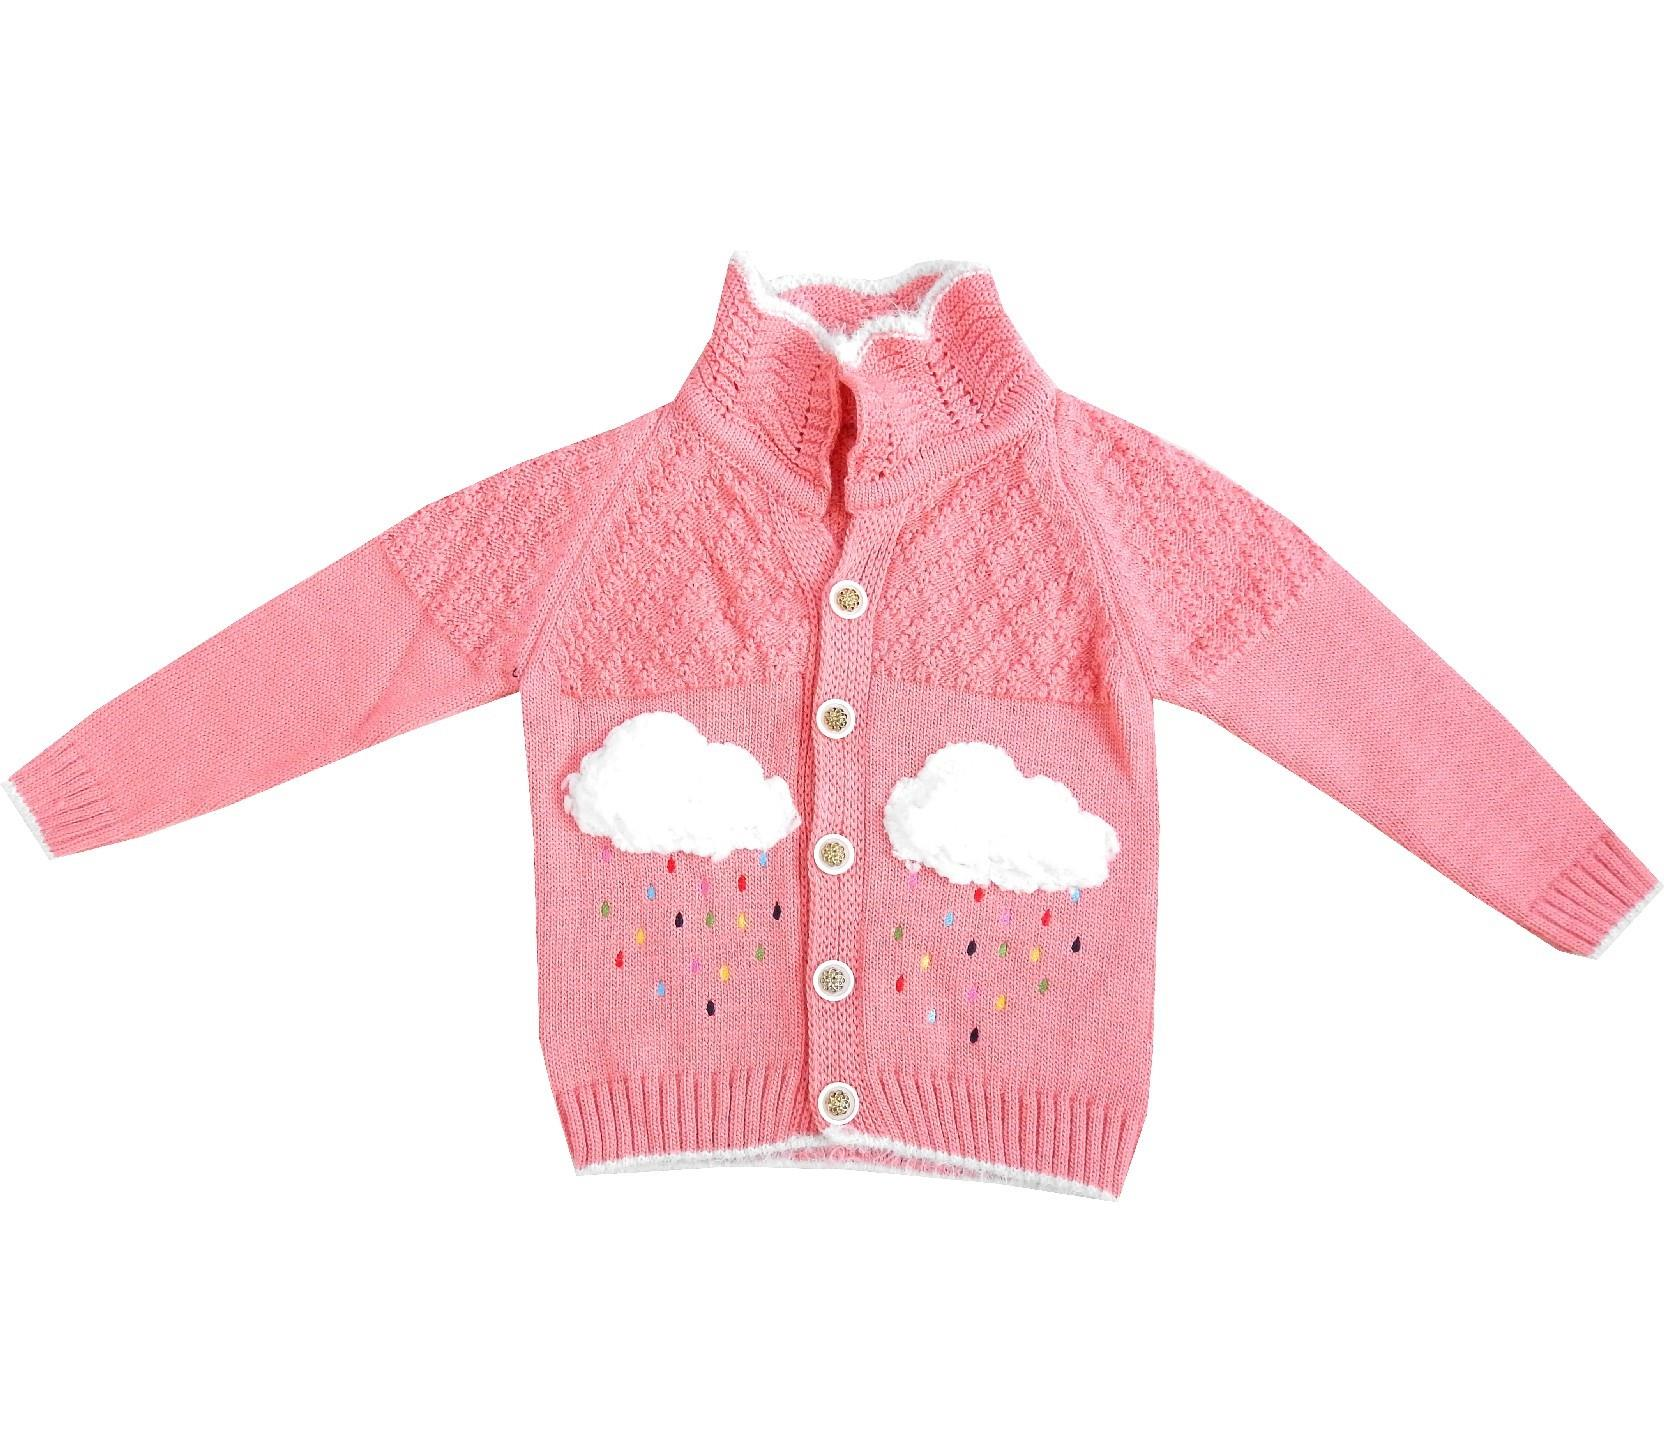 CLOUDY RAIN KNITTED DESIGN CARDIGAN FOR GIRL (1-2-3-4 AGE)